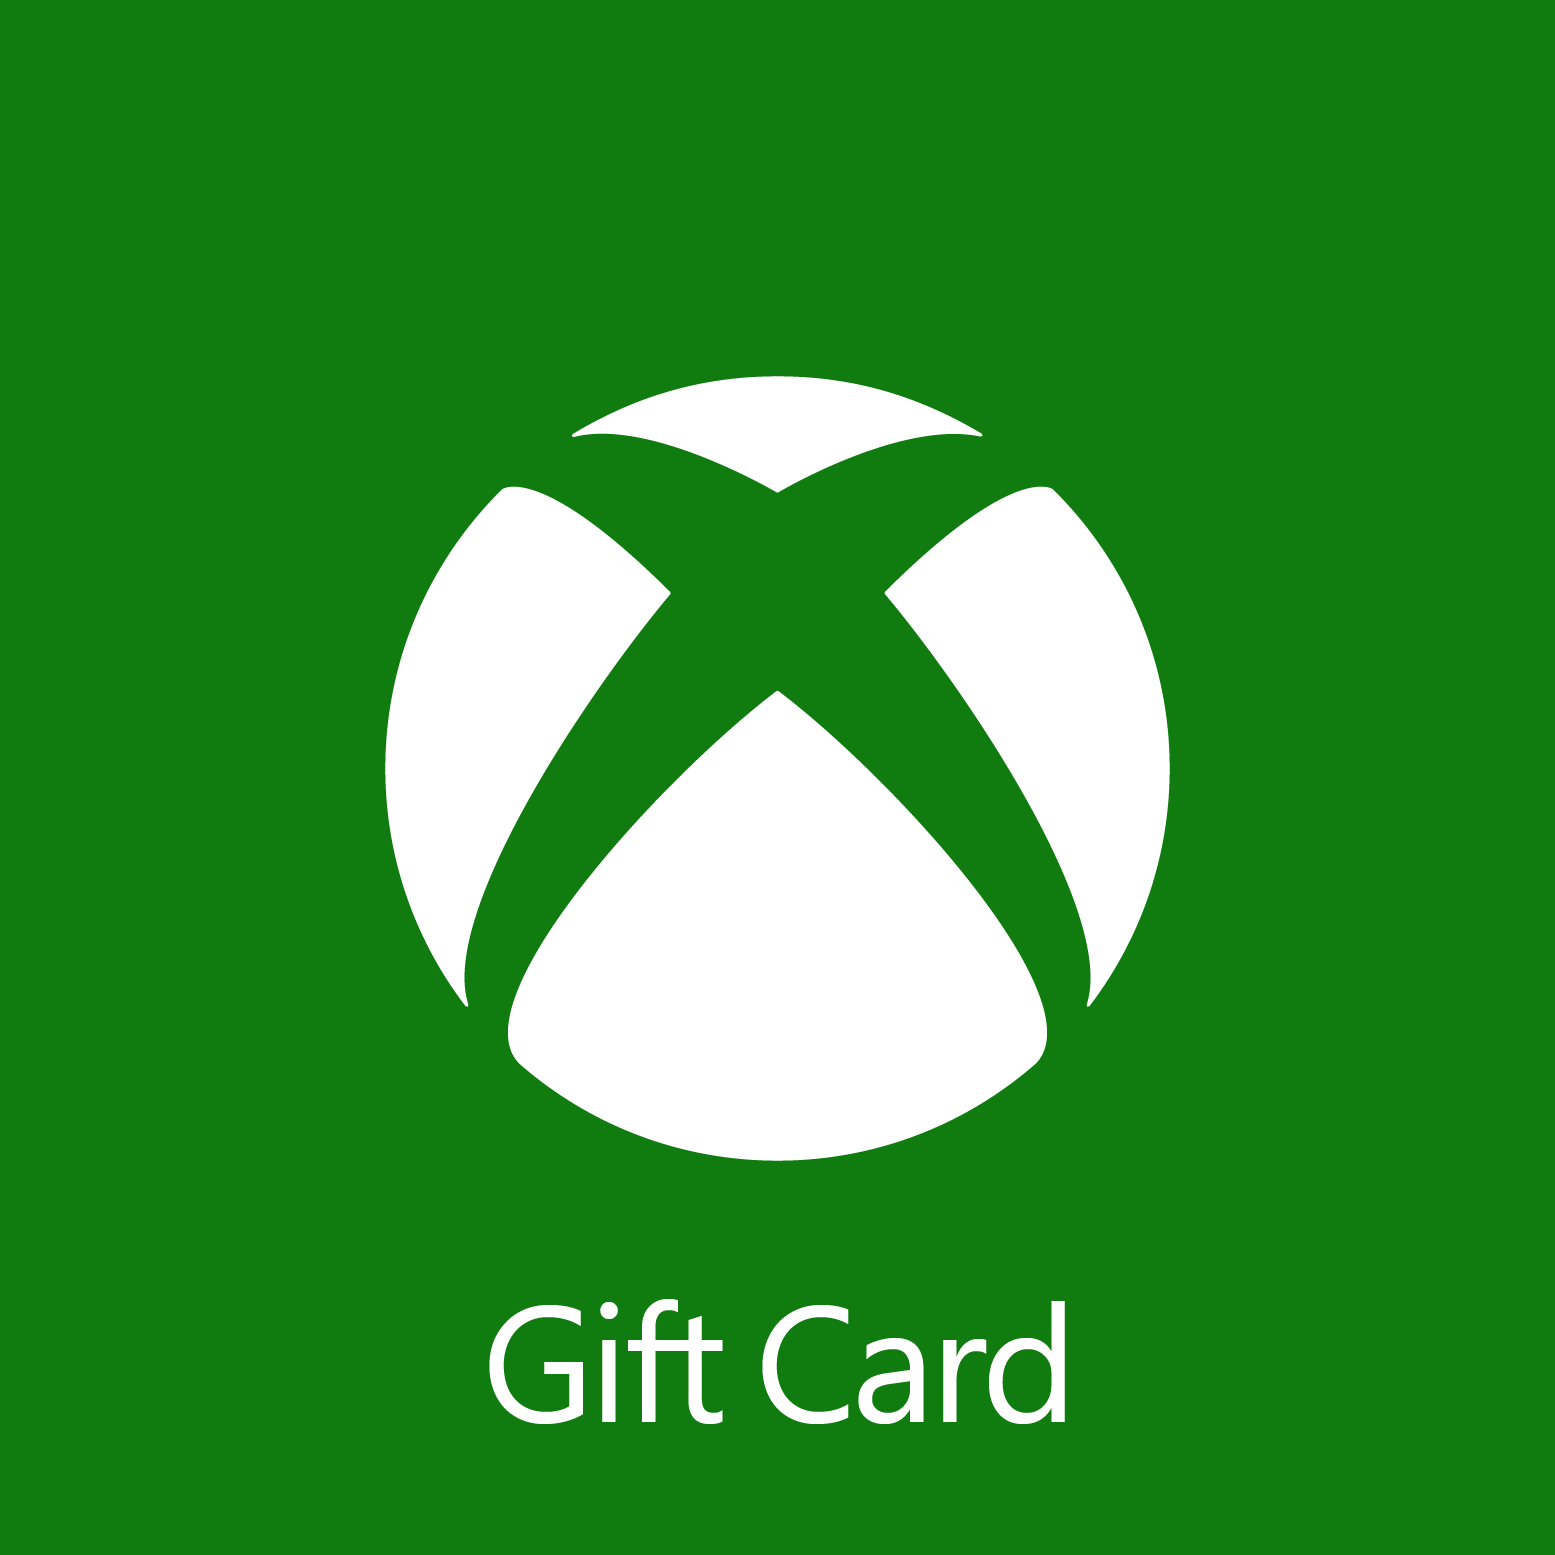 RE1Xx20?ver=255f - $63.00 Xbox Digital Gift Card